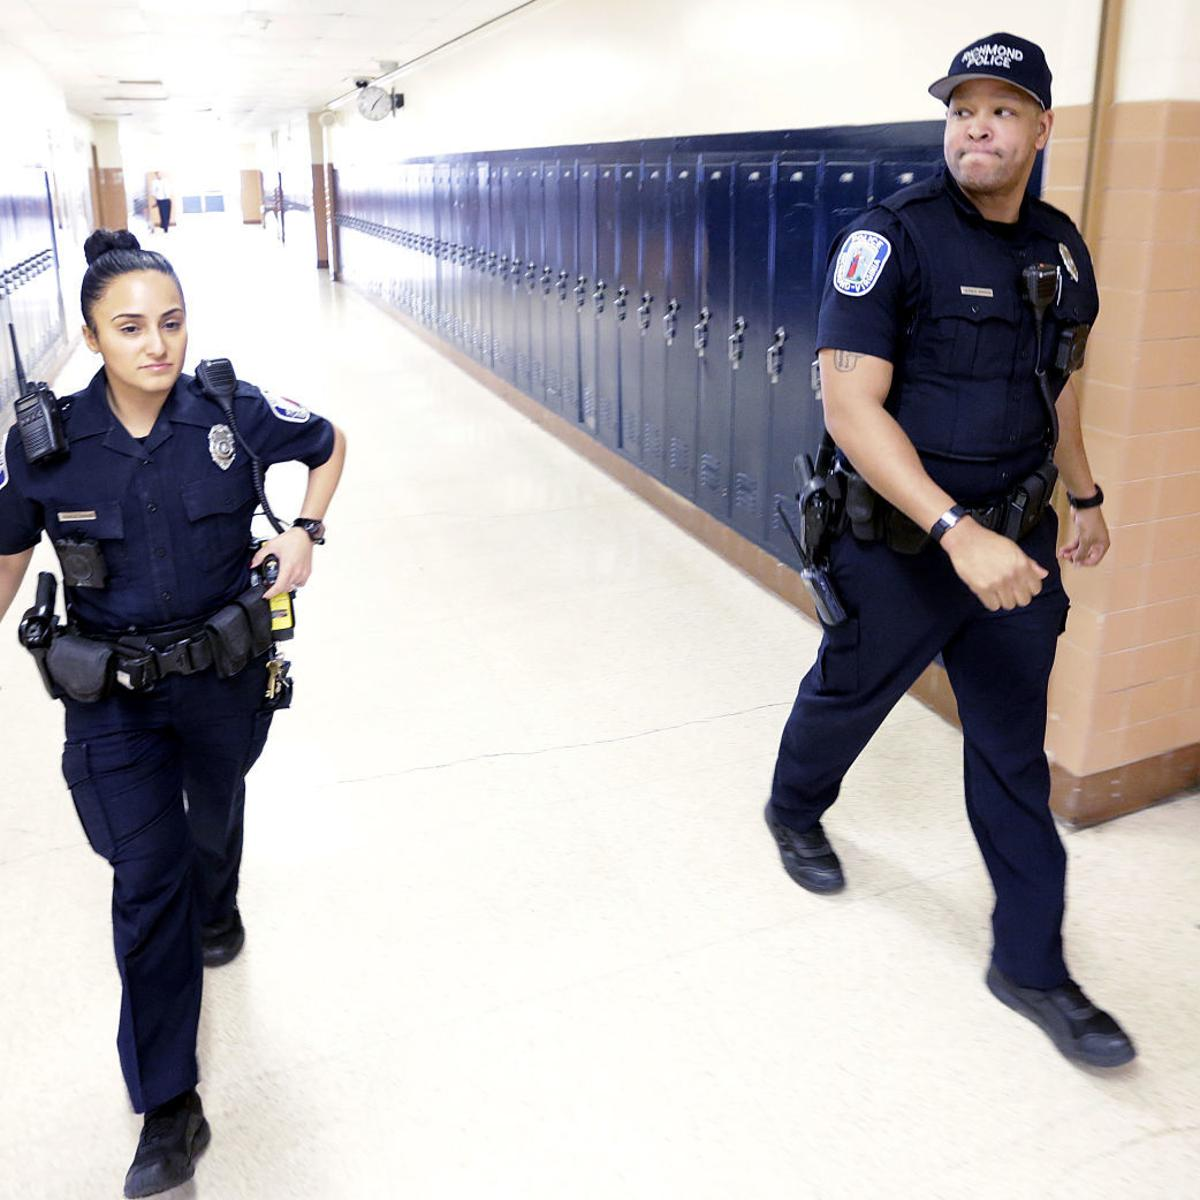 More school resource officers and mental health resources